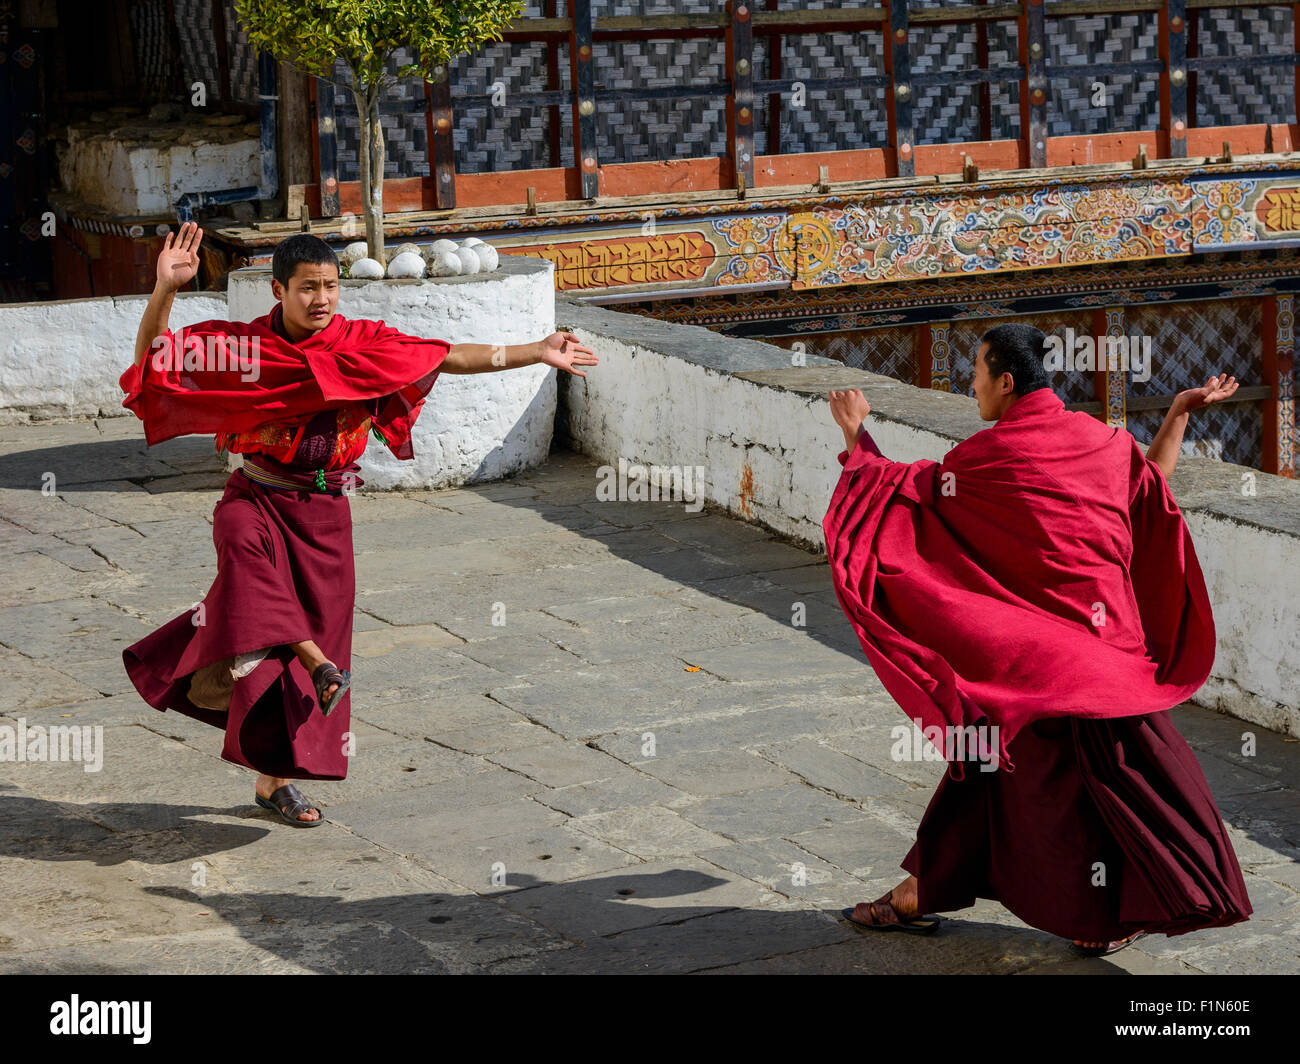 Monks at the temple in Bhutan - Stock Image